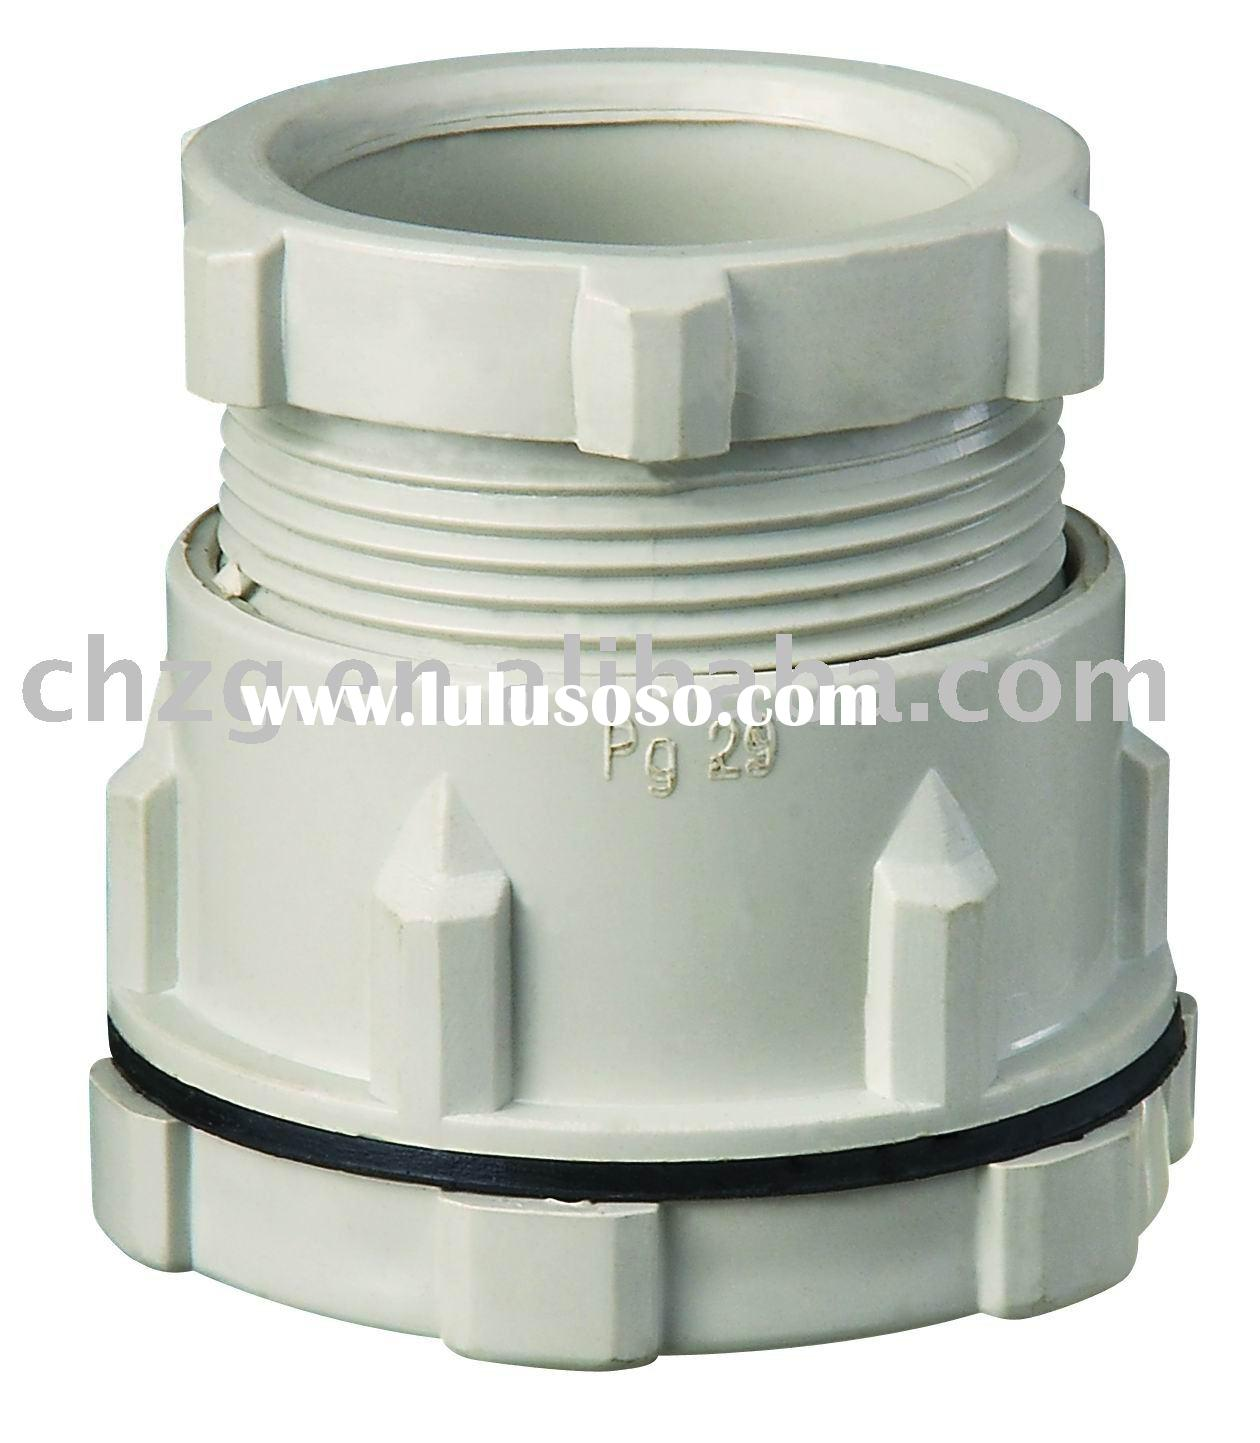 Cable Glands For Flat Cable Flat Cable Gland